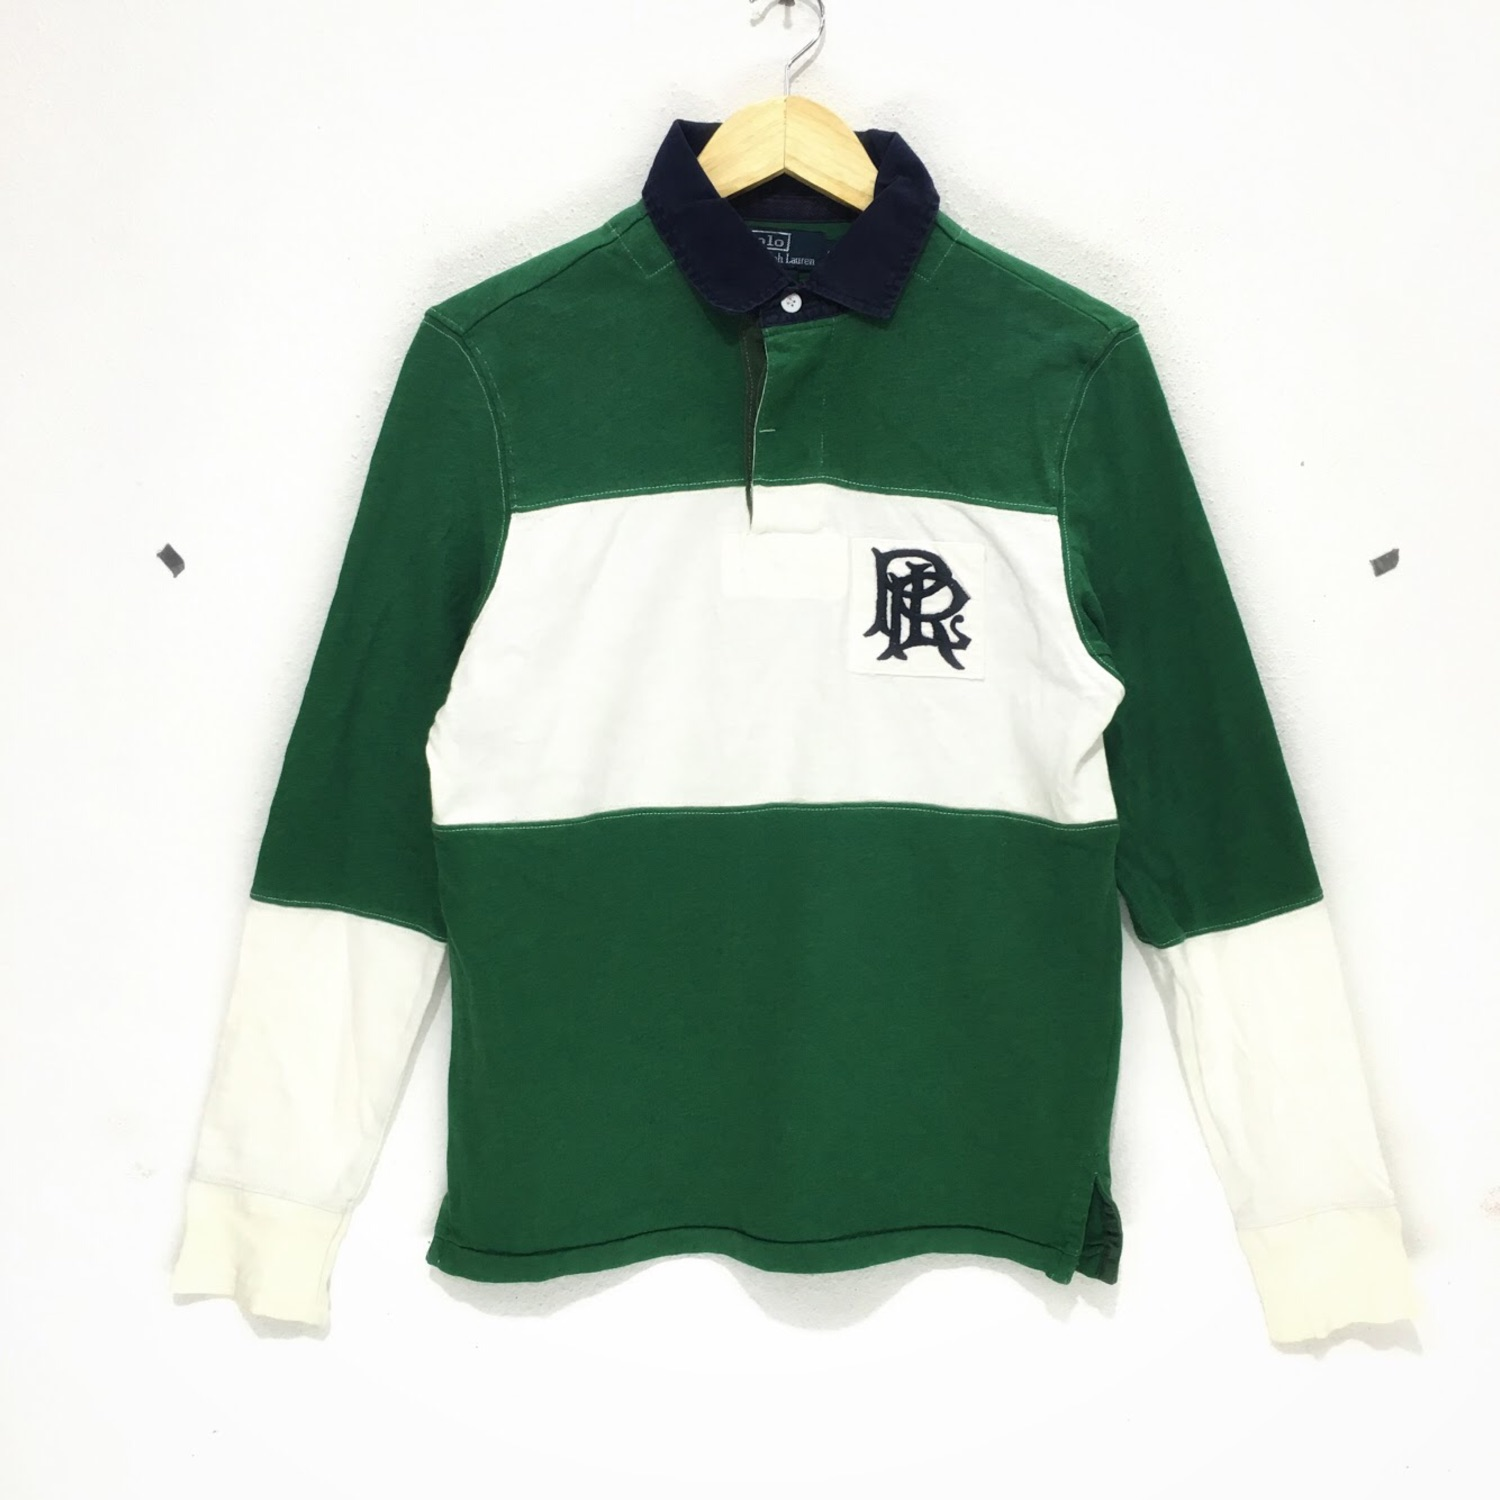 Polo Double Rrl Ralph Lauren Usa Rugby T-Shirt